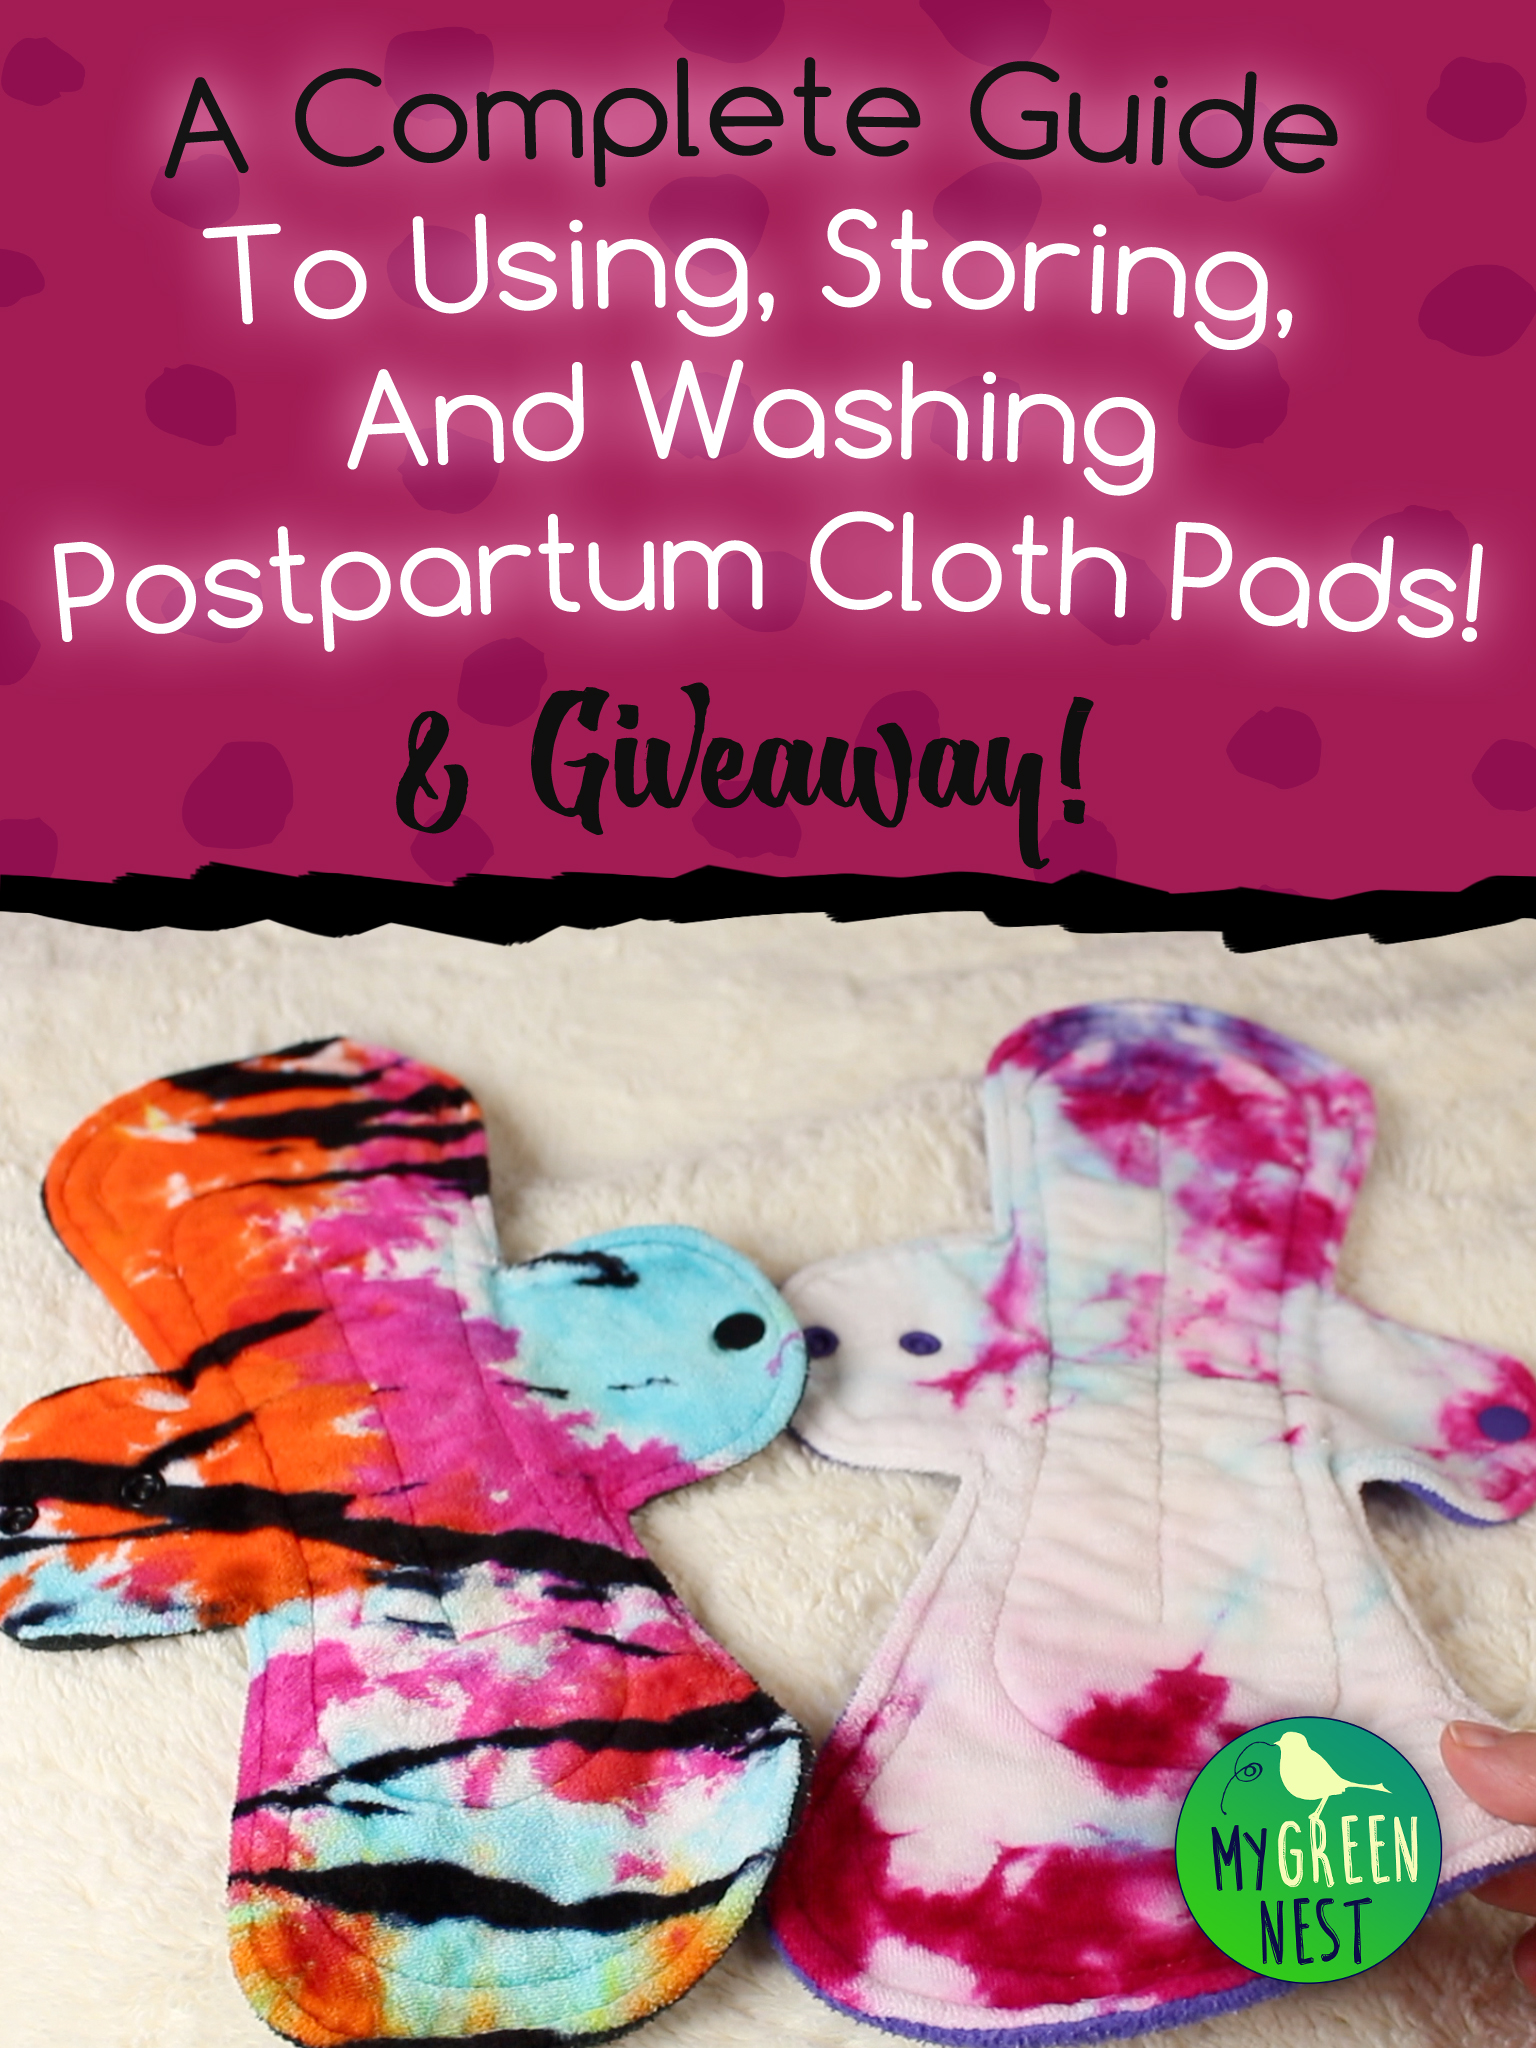 Everything you need to know about using, storing, and washing postpartum cloth pads